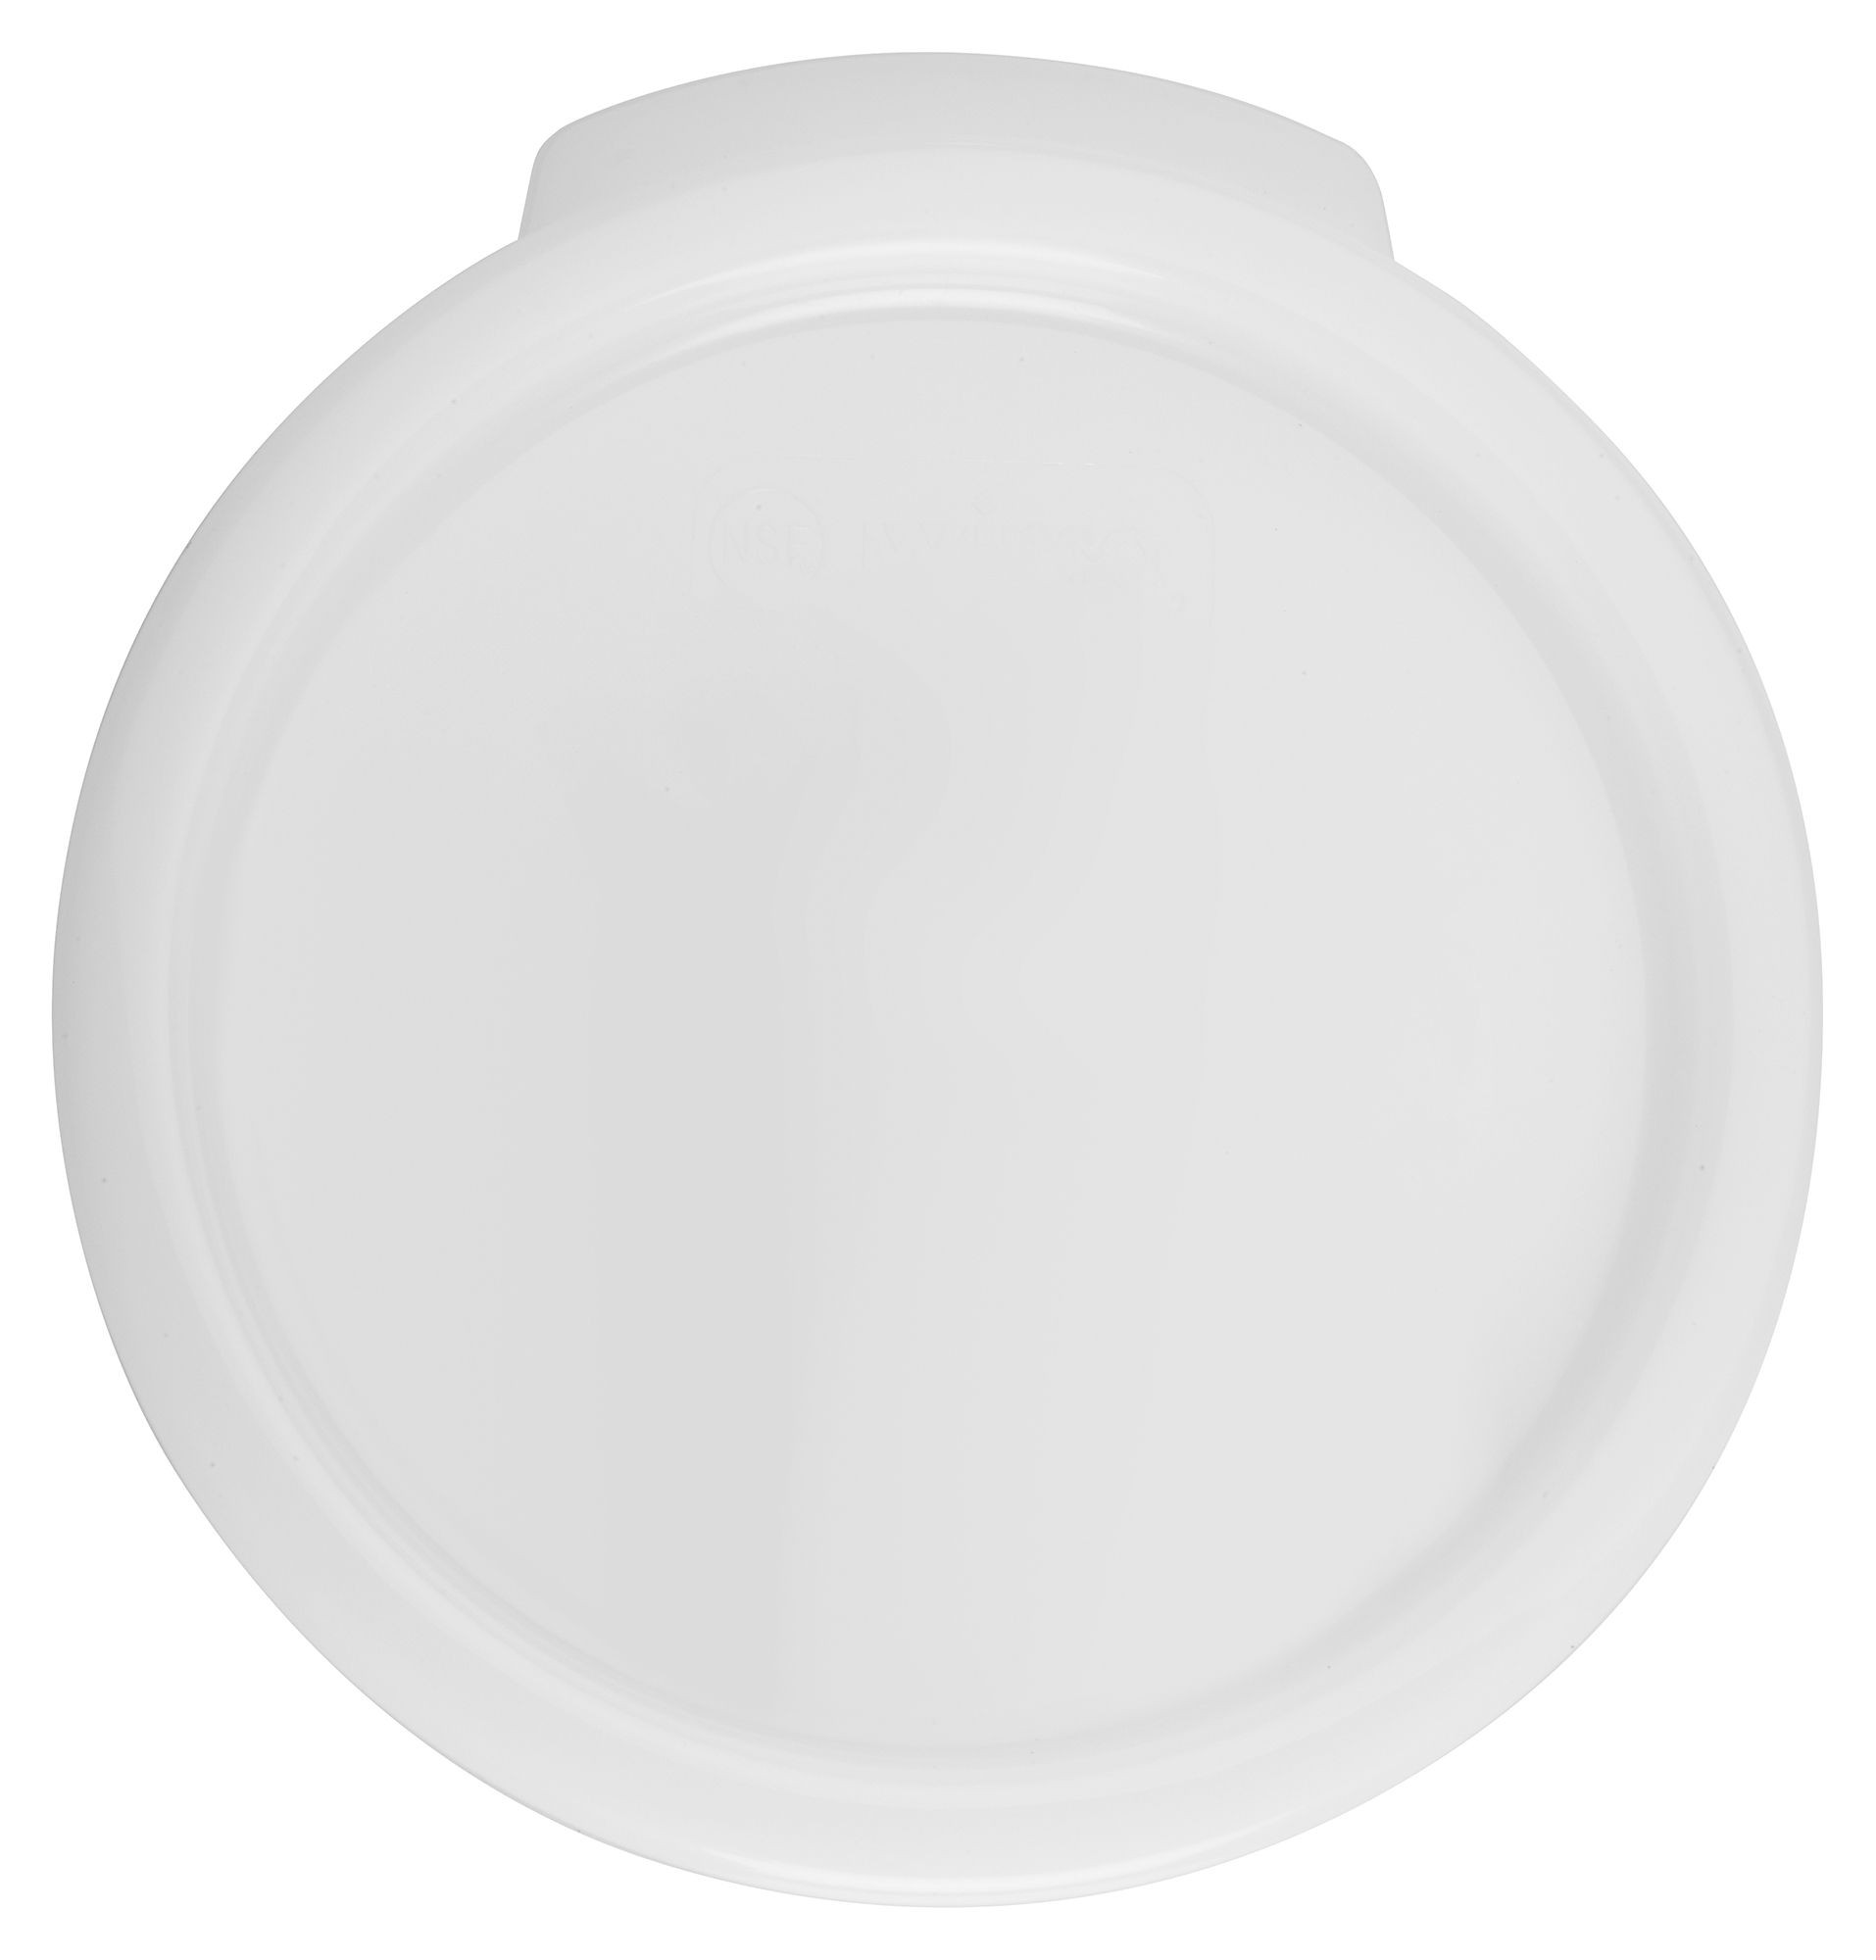 Winco PPRC-1C White Round Cover fits 1 Qt. Storage Container